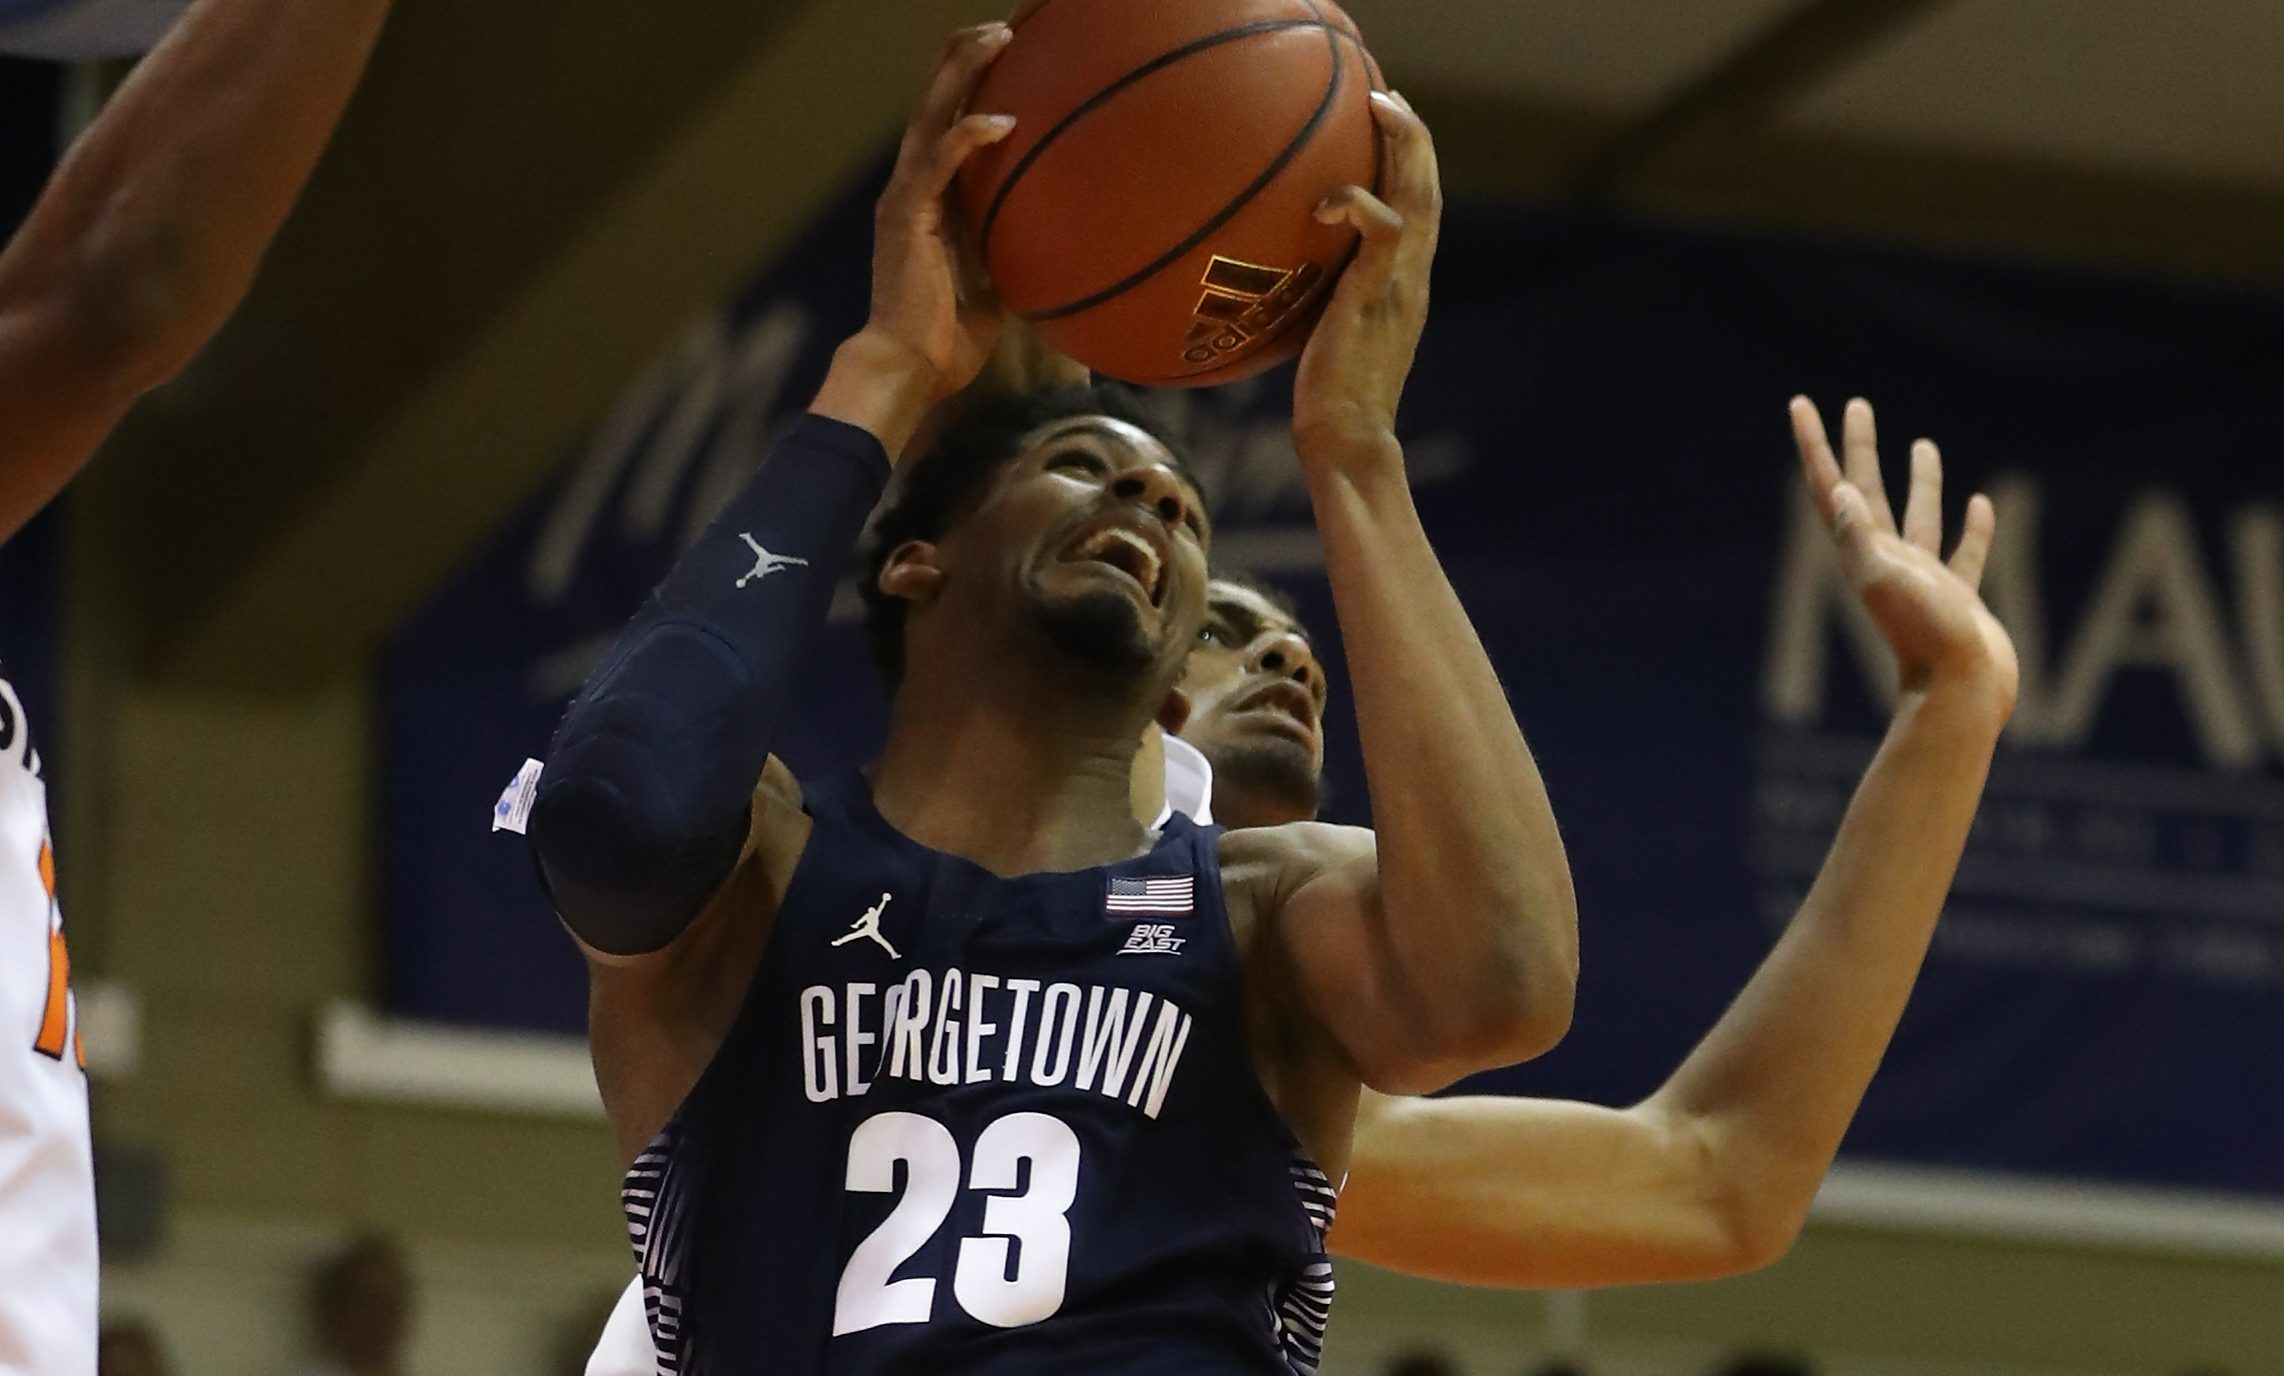 LAHAINA, HI - NOVEMBER 23: Rodney Pryor #23 of the Georgetown Hoyas glides to the basket and shoots during the second half of the Maui Invitational NCAA college basketball game at the Lahaina Civic Center on November 23, 2016 in Lahaina, Hawaii. (Photo by Darryl Oumi/Getty Images). Oklahoma State won the game 97-70.